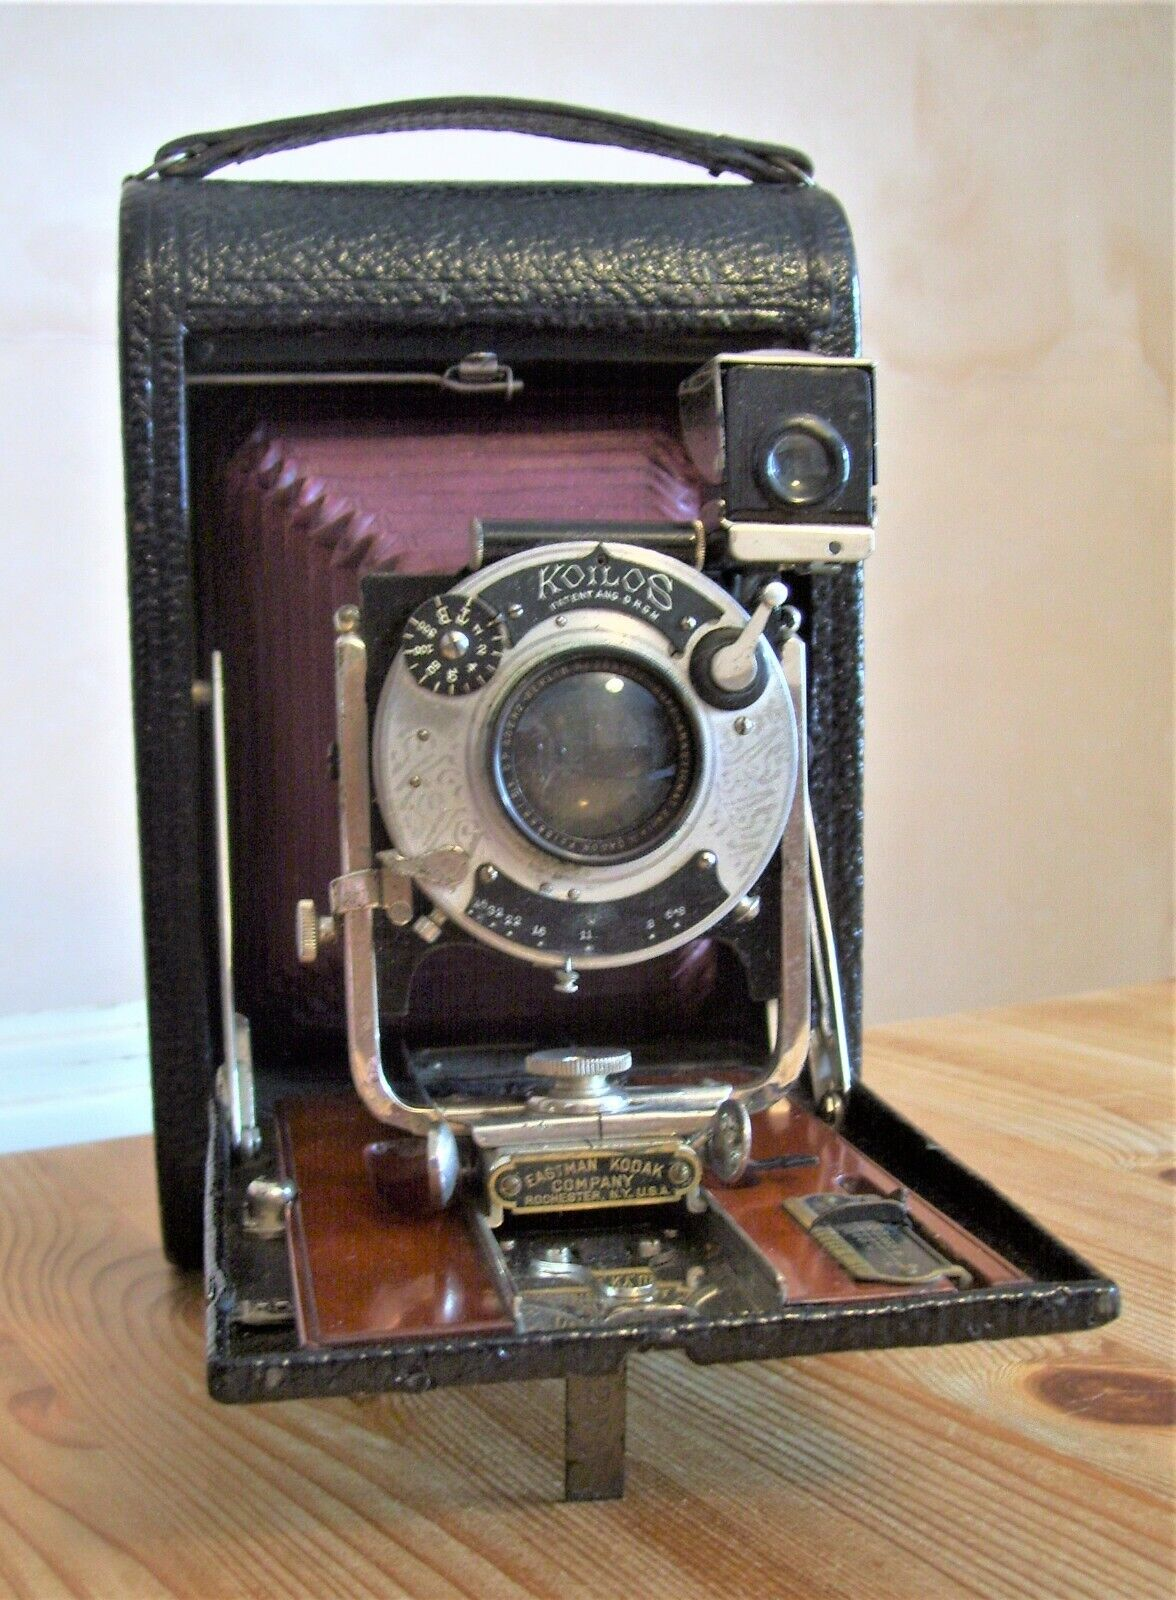 Antique (1902) Kodak No 4 Folding Pocket Camera - Model B